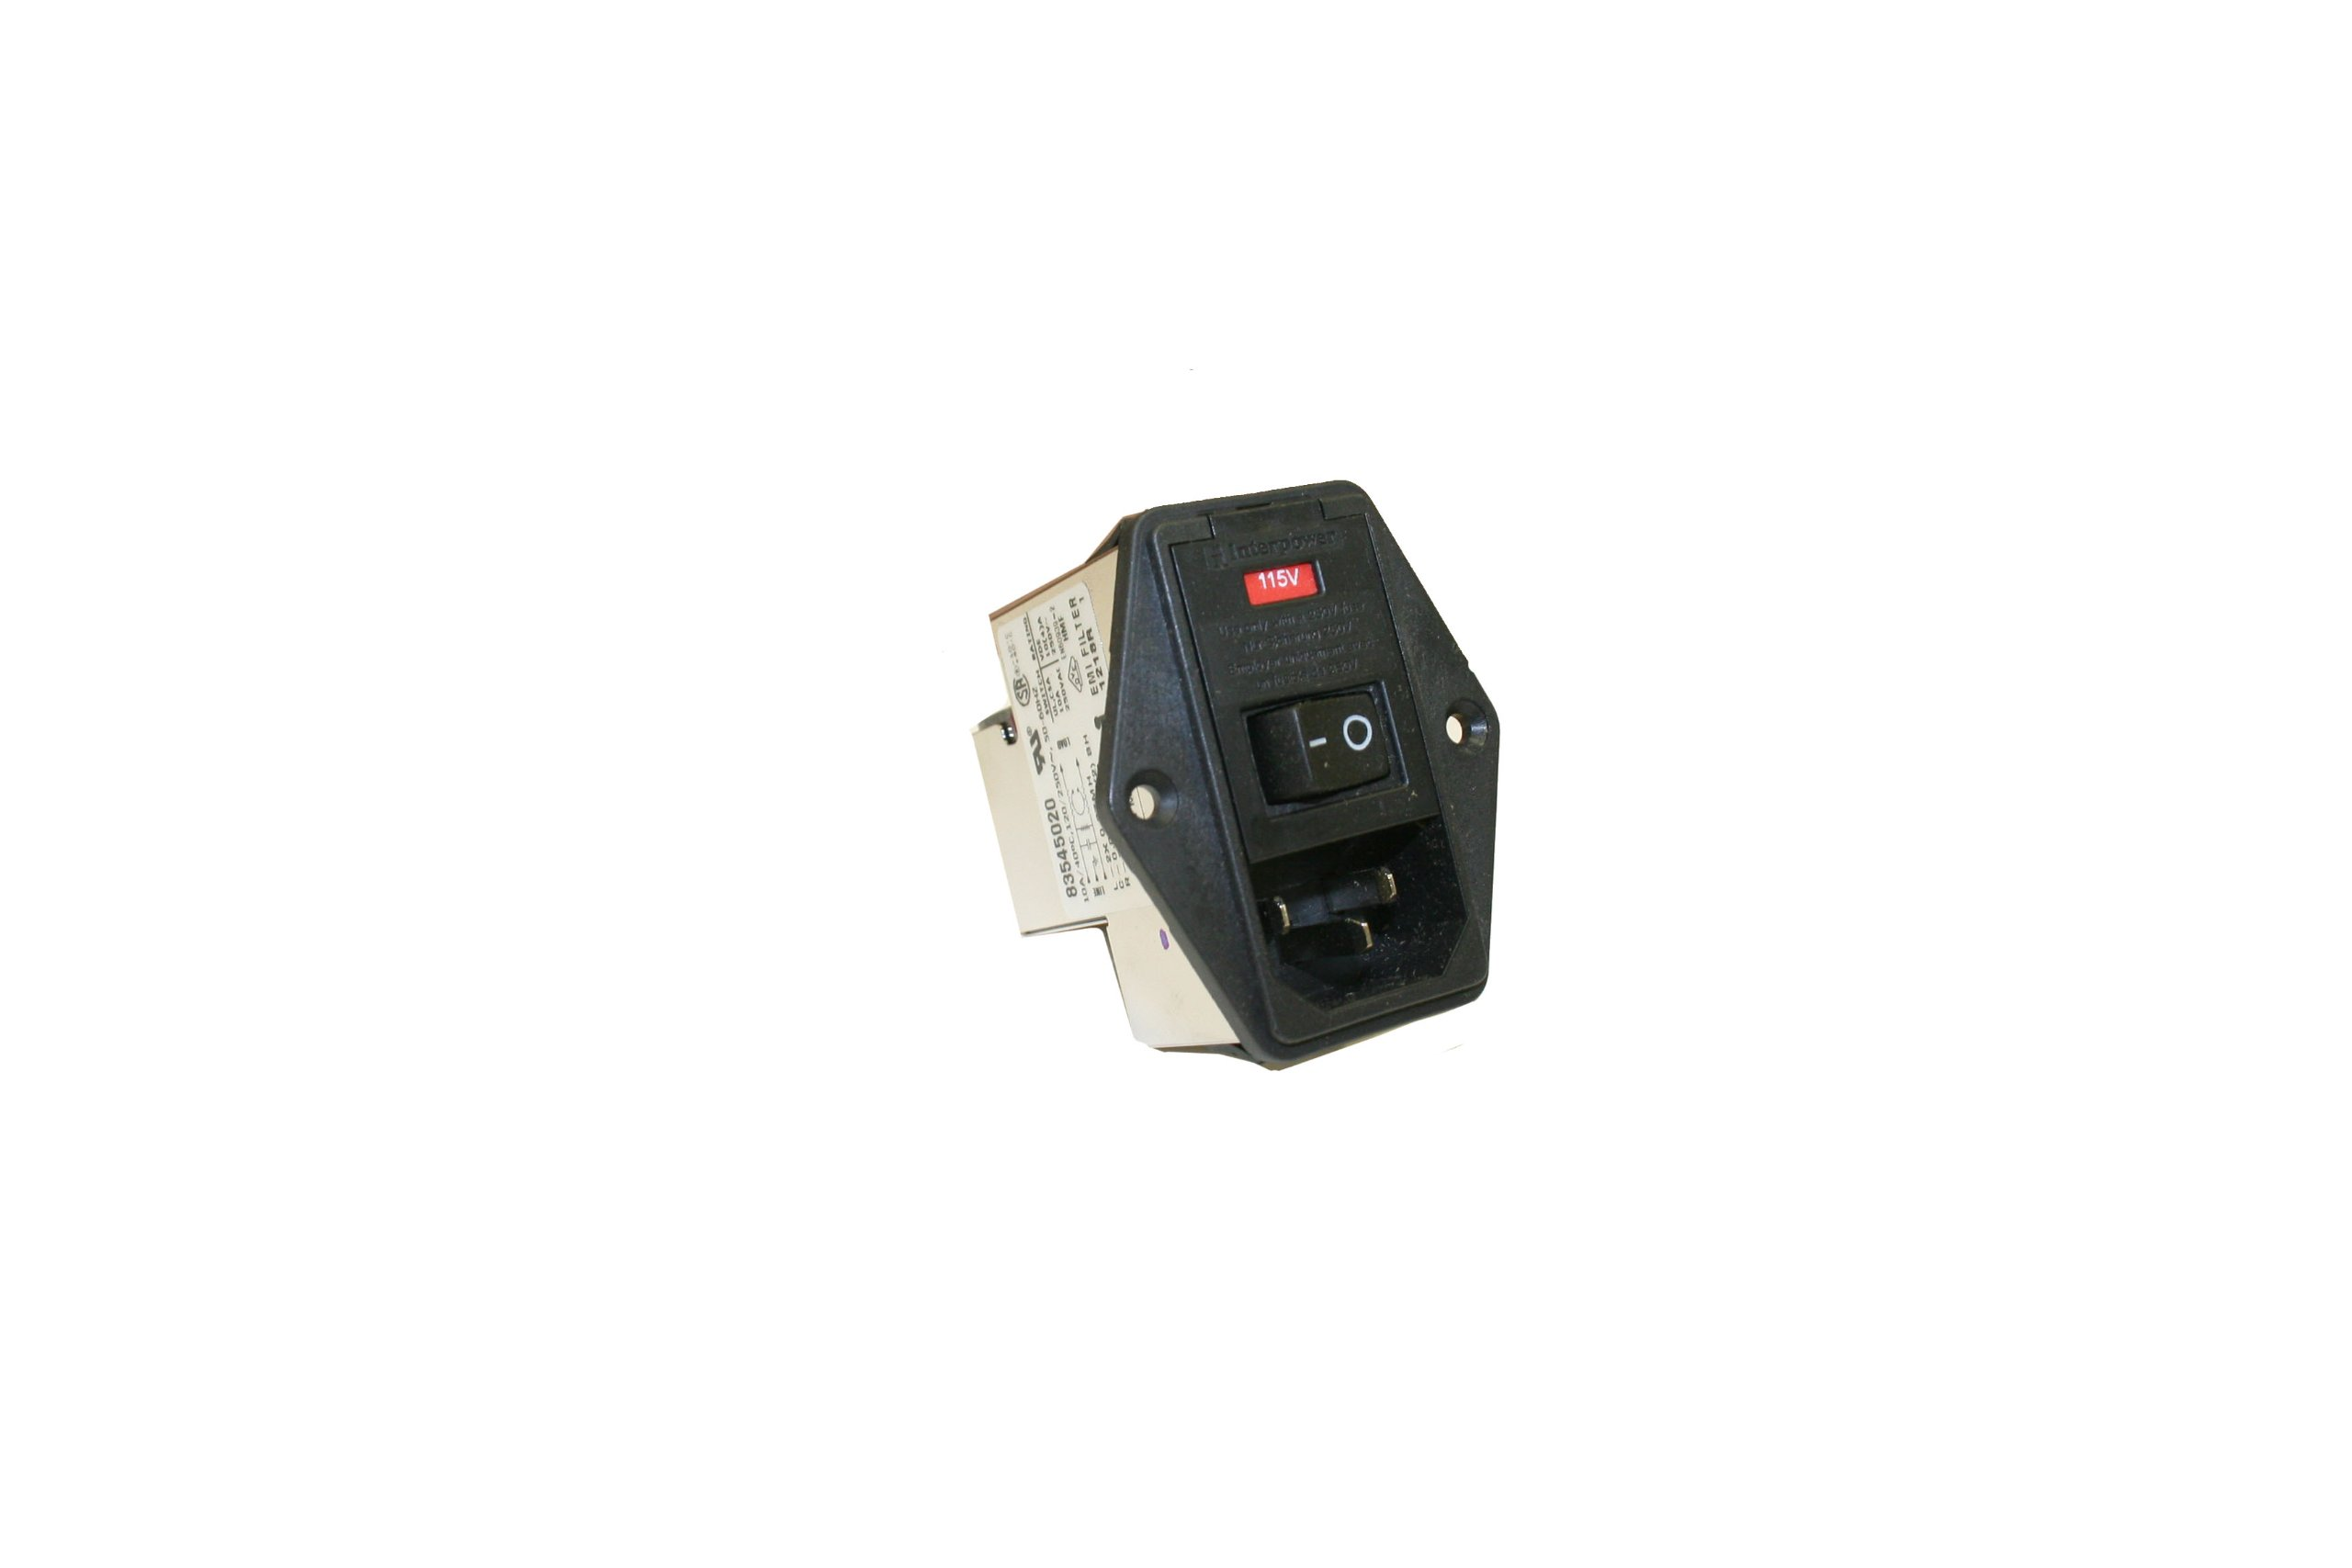 Interpower 83545020 Five Function Medical Grade Module, C14 Inlet, Switch, Double Fused, Voltage Selector, Filter, 10A Current Rating, 120/250VAC Voltage Rating by Interpower